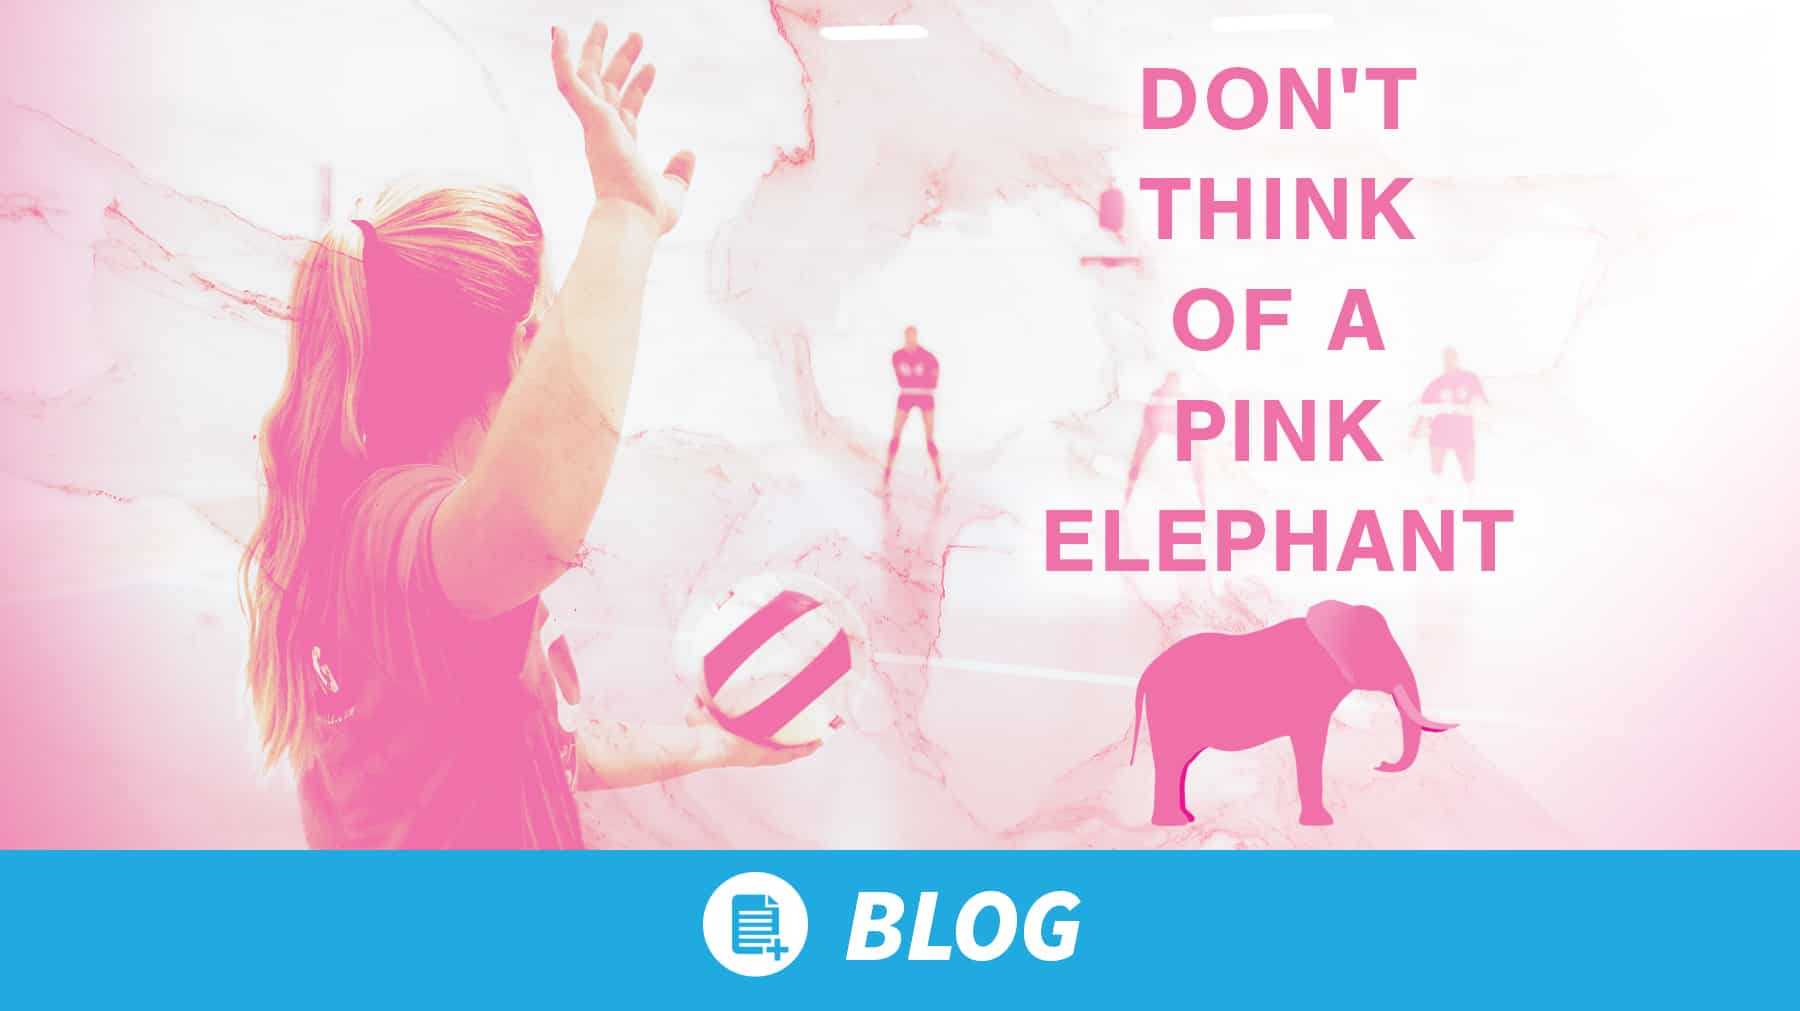 Don't think of a pink elephant!